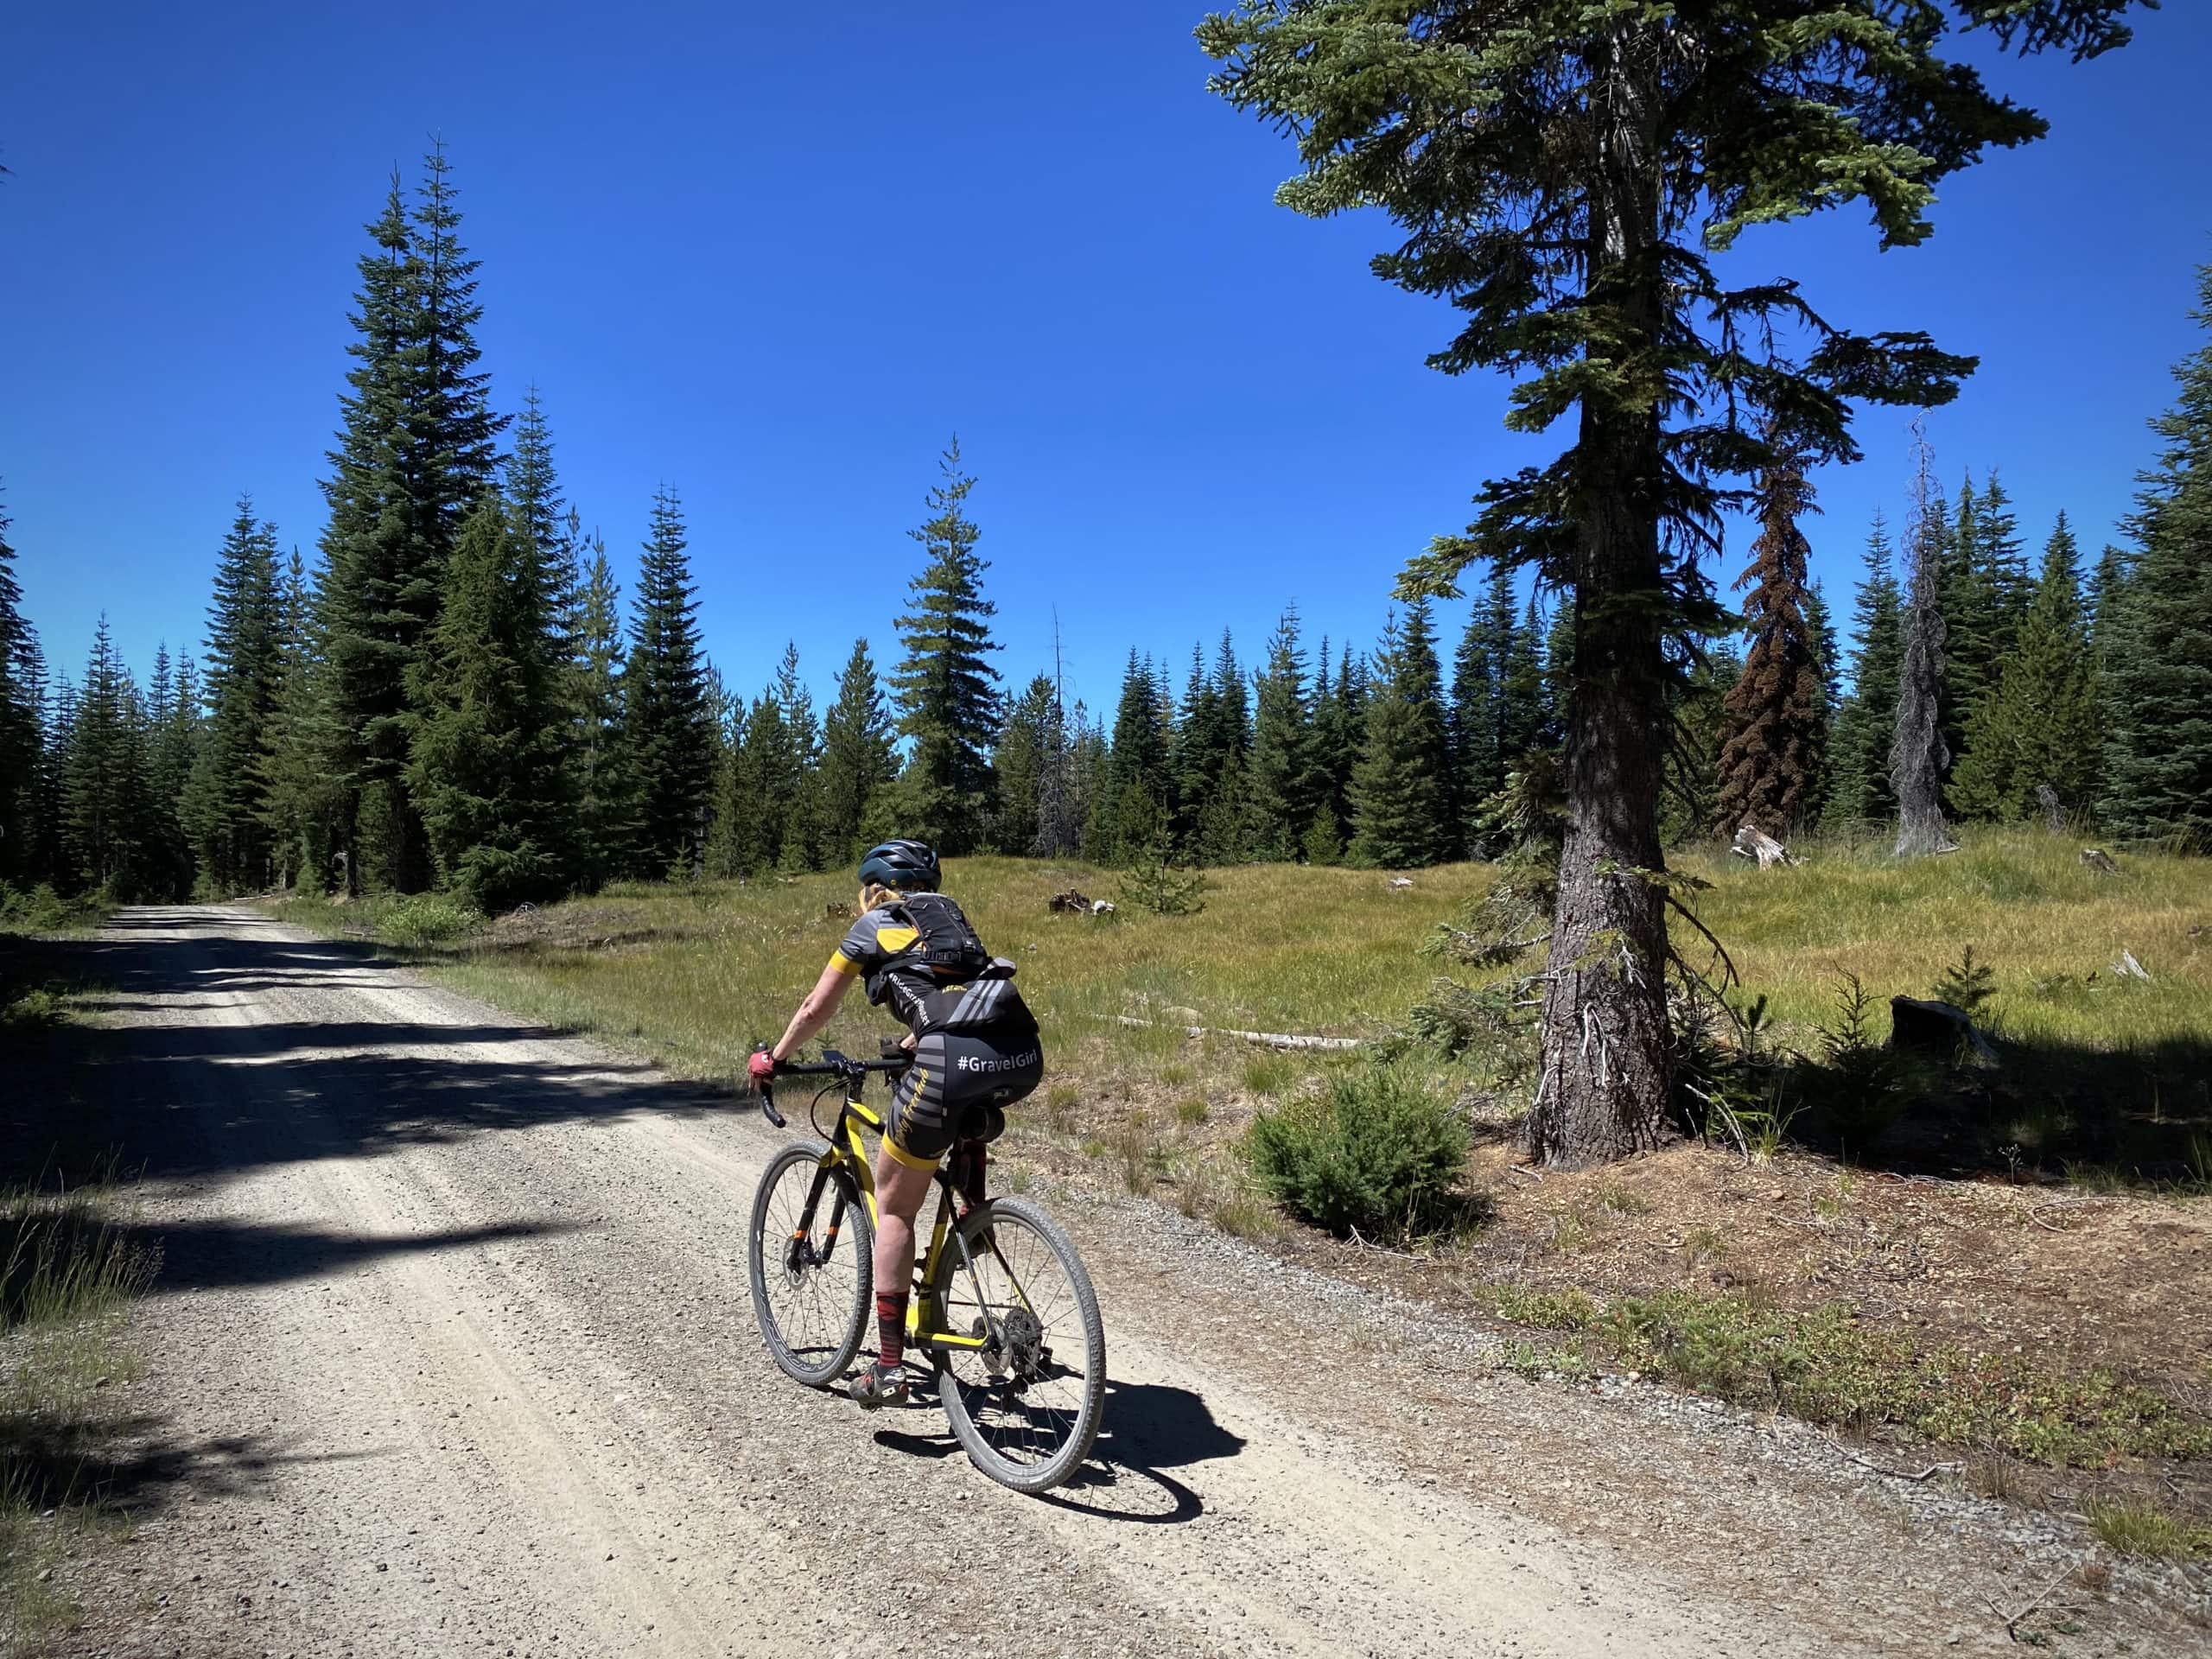 Gravel Cyclist riding through grassy meadow in the North Umpqua National forest.